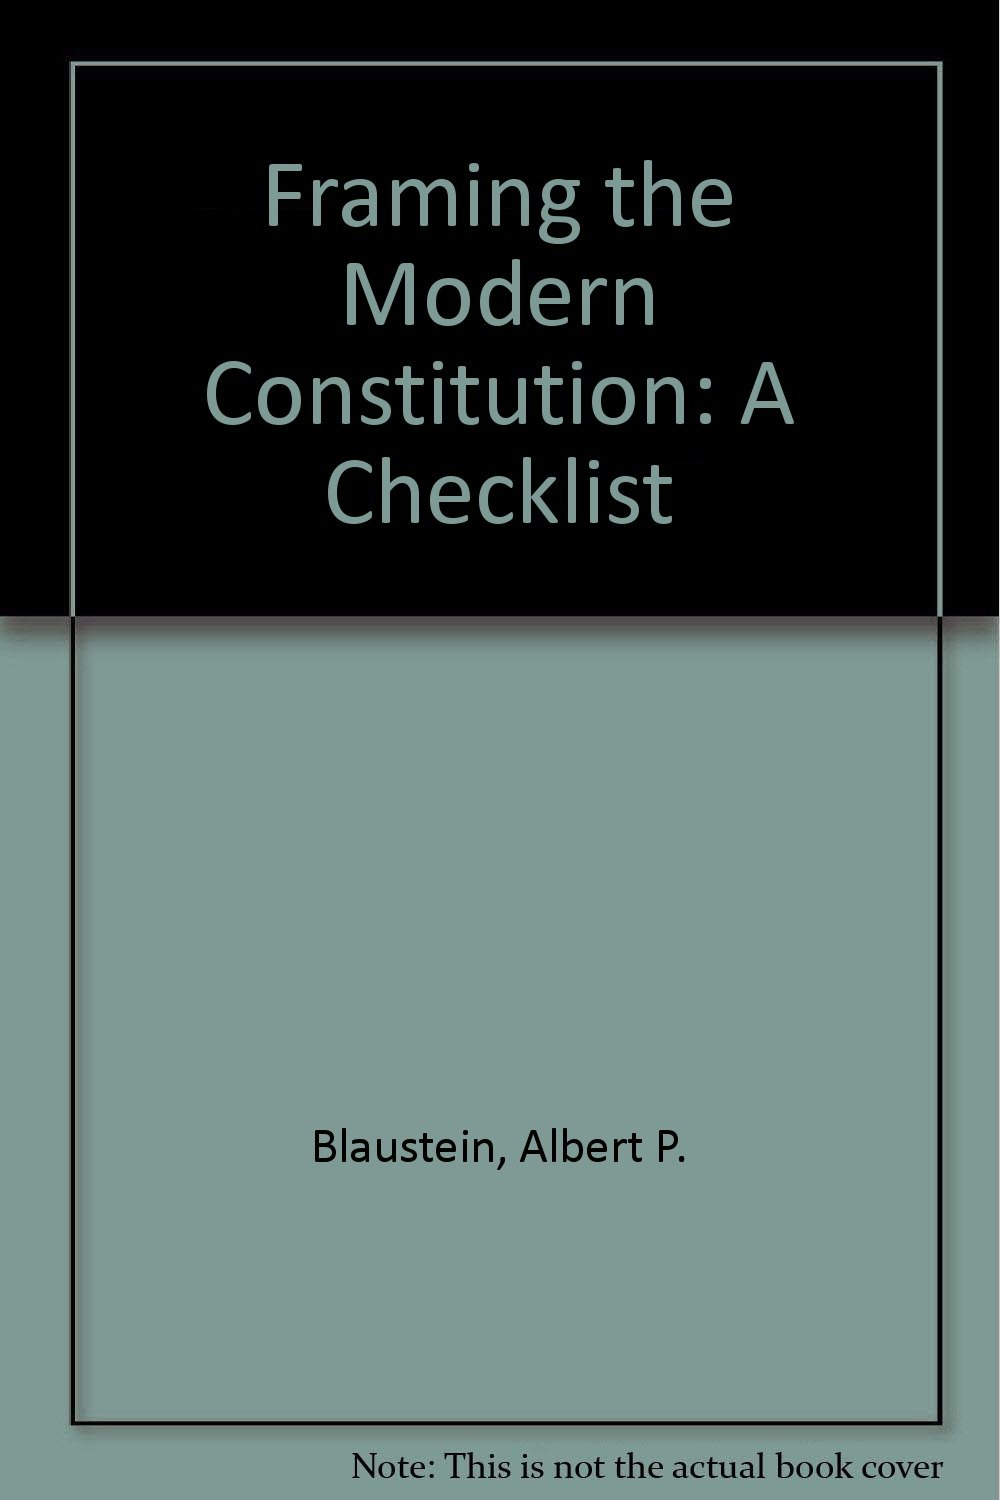 Framing the Modern Constitution: A Checklist: Amazon.de: Albert P ...